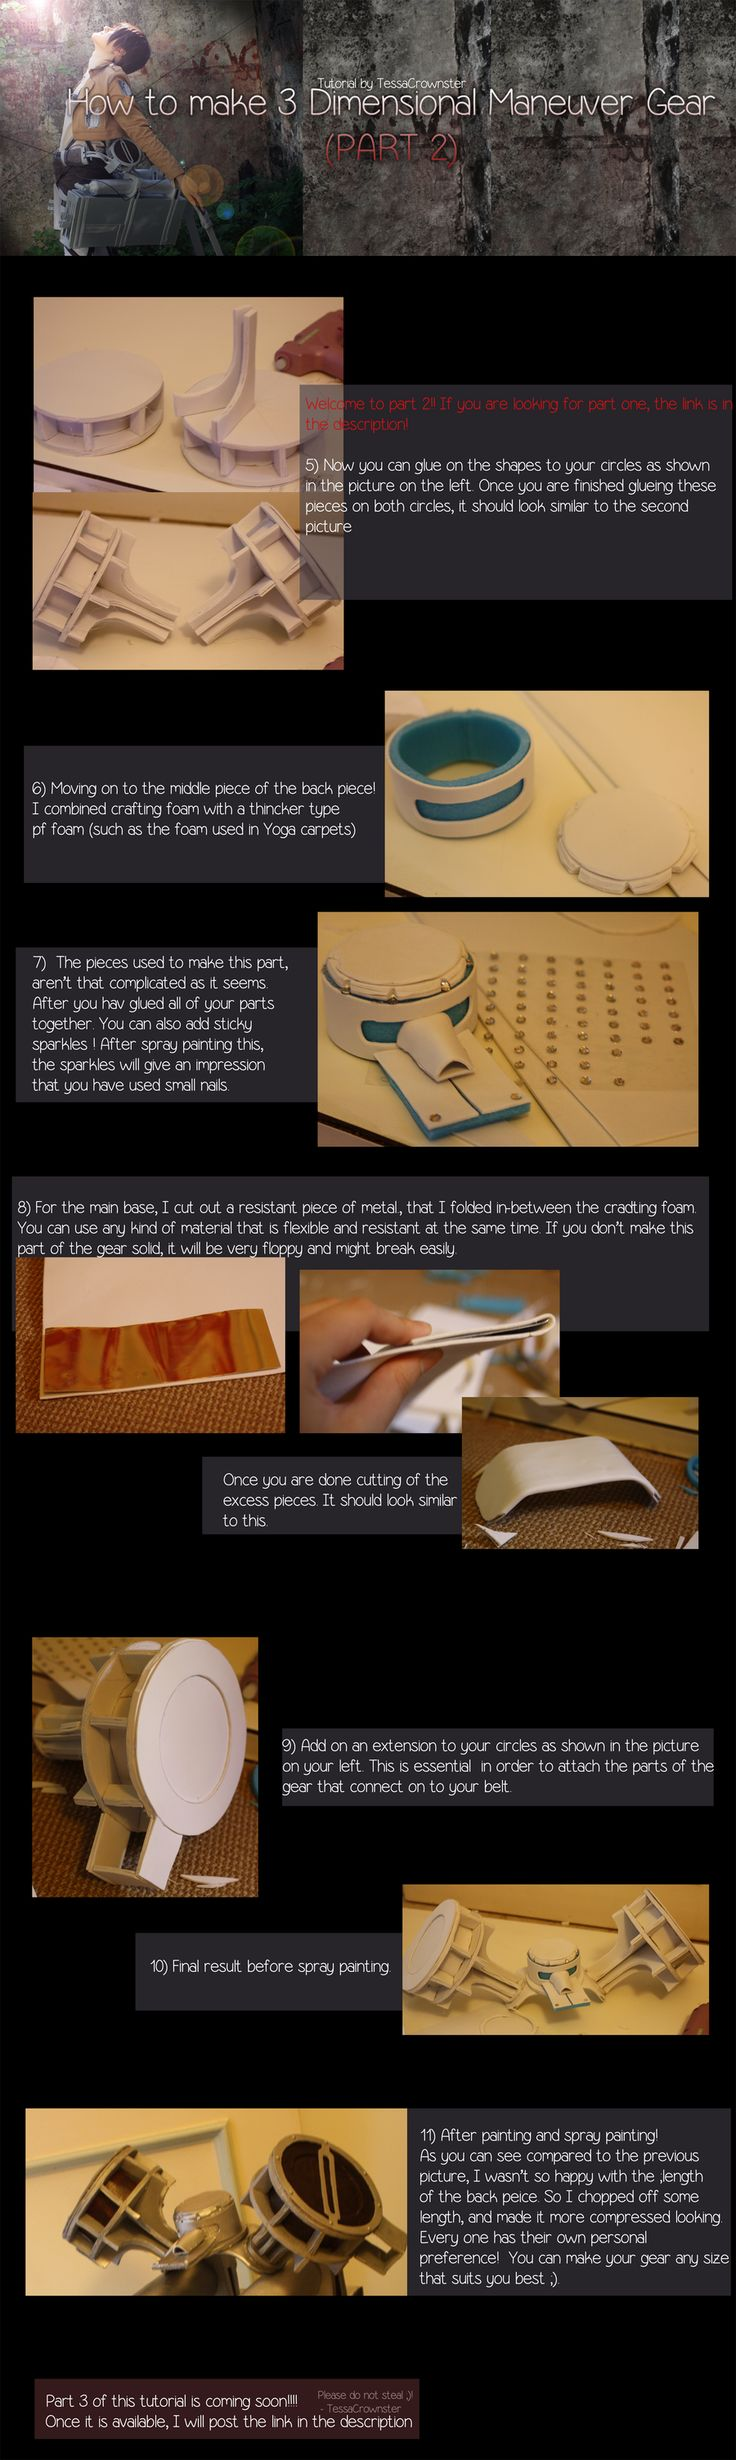 How to make 3 Dimensional Maneuver gear - [Part 2] by TessaCrownster.deviantart.com on @deviantART